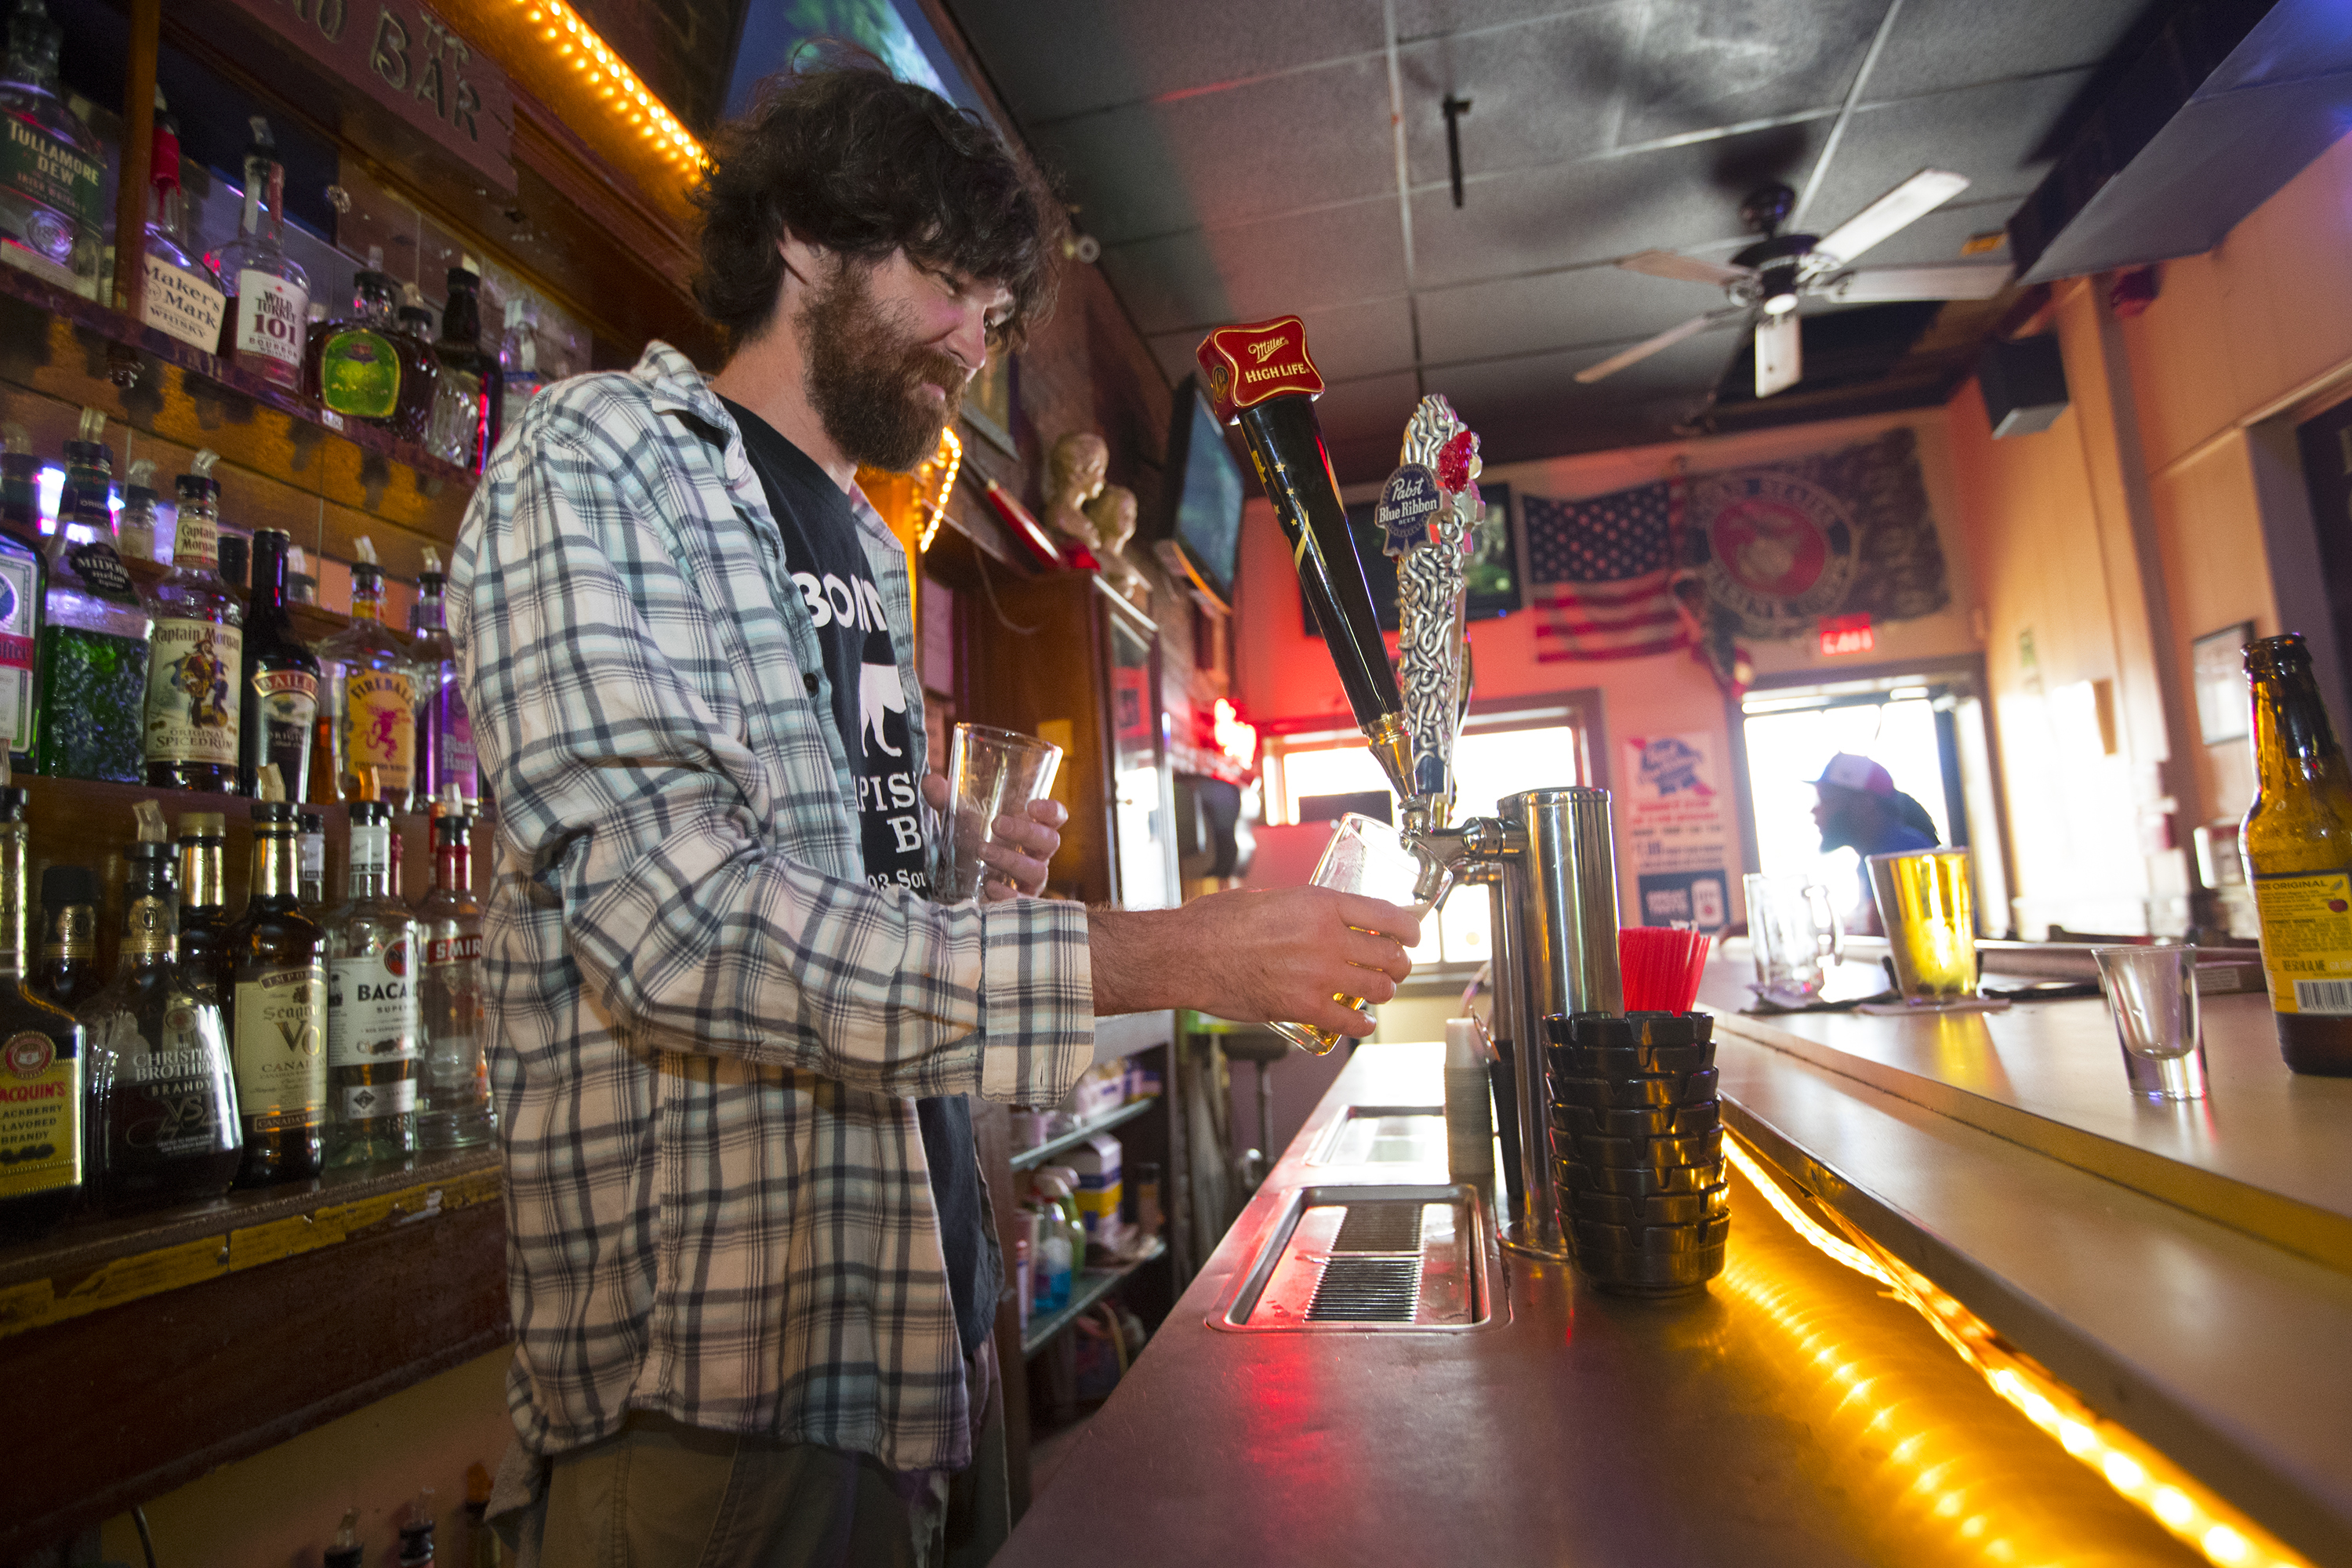 At Bonnie�s Capistrano bar, bartender Eamon Gallagher pour a beer.